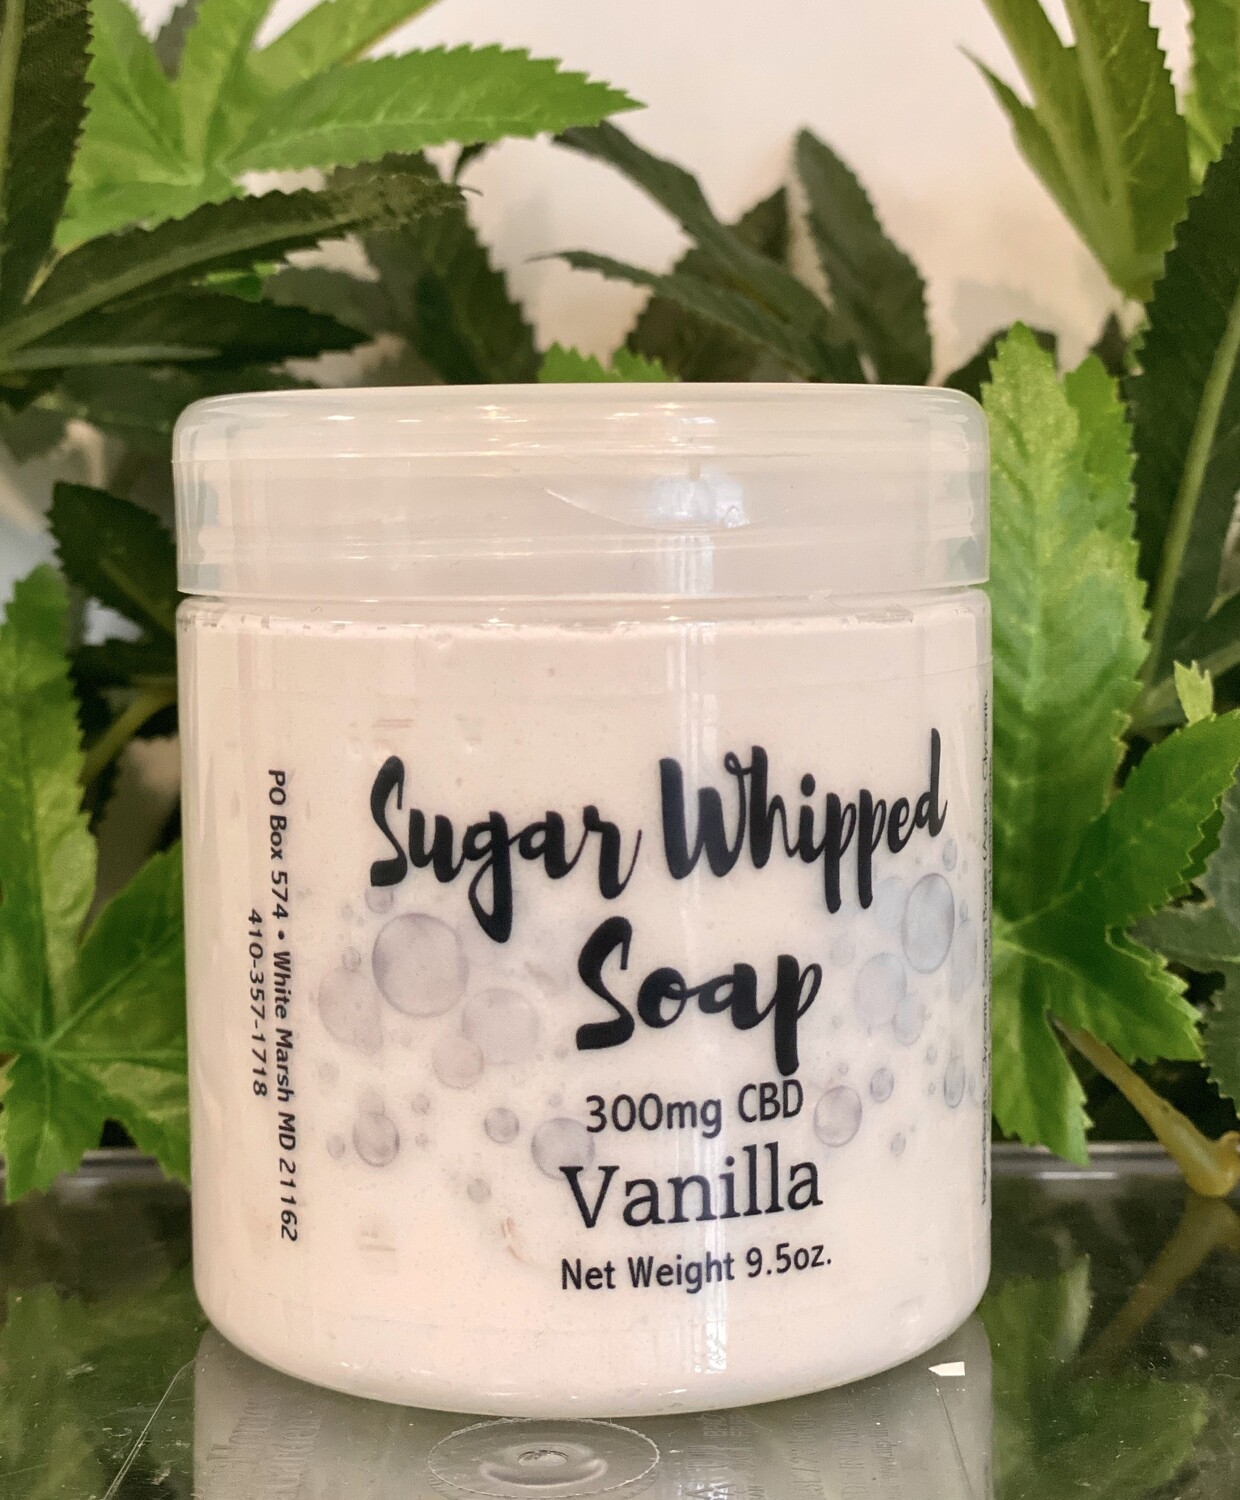 Sugar Whipped Soap - Vanilla 300mg